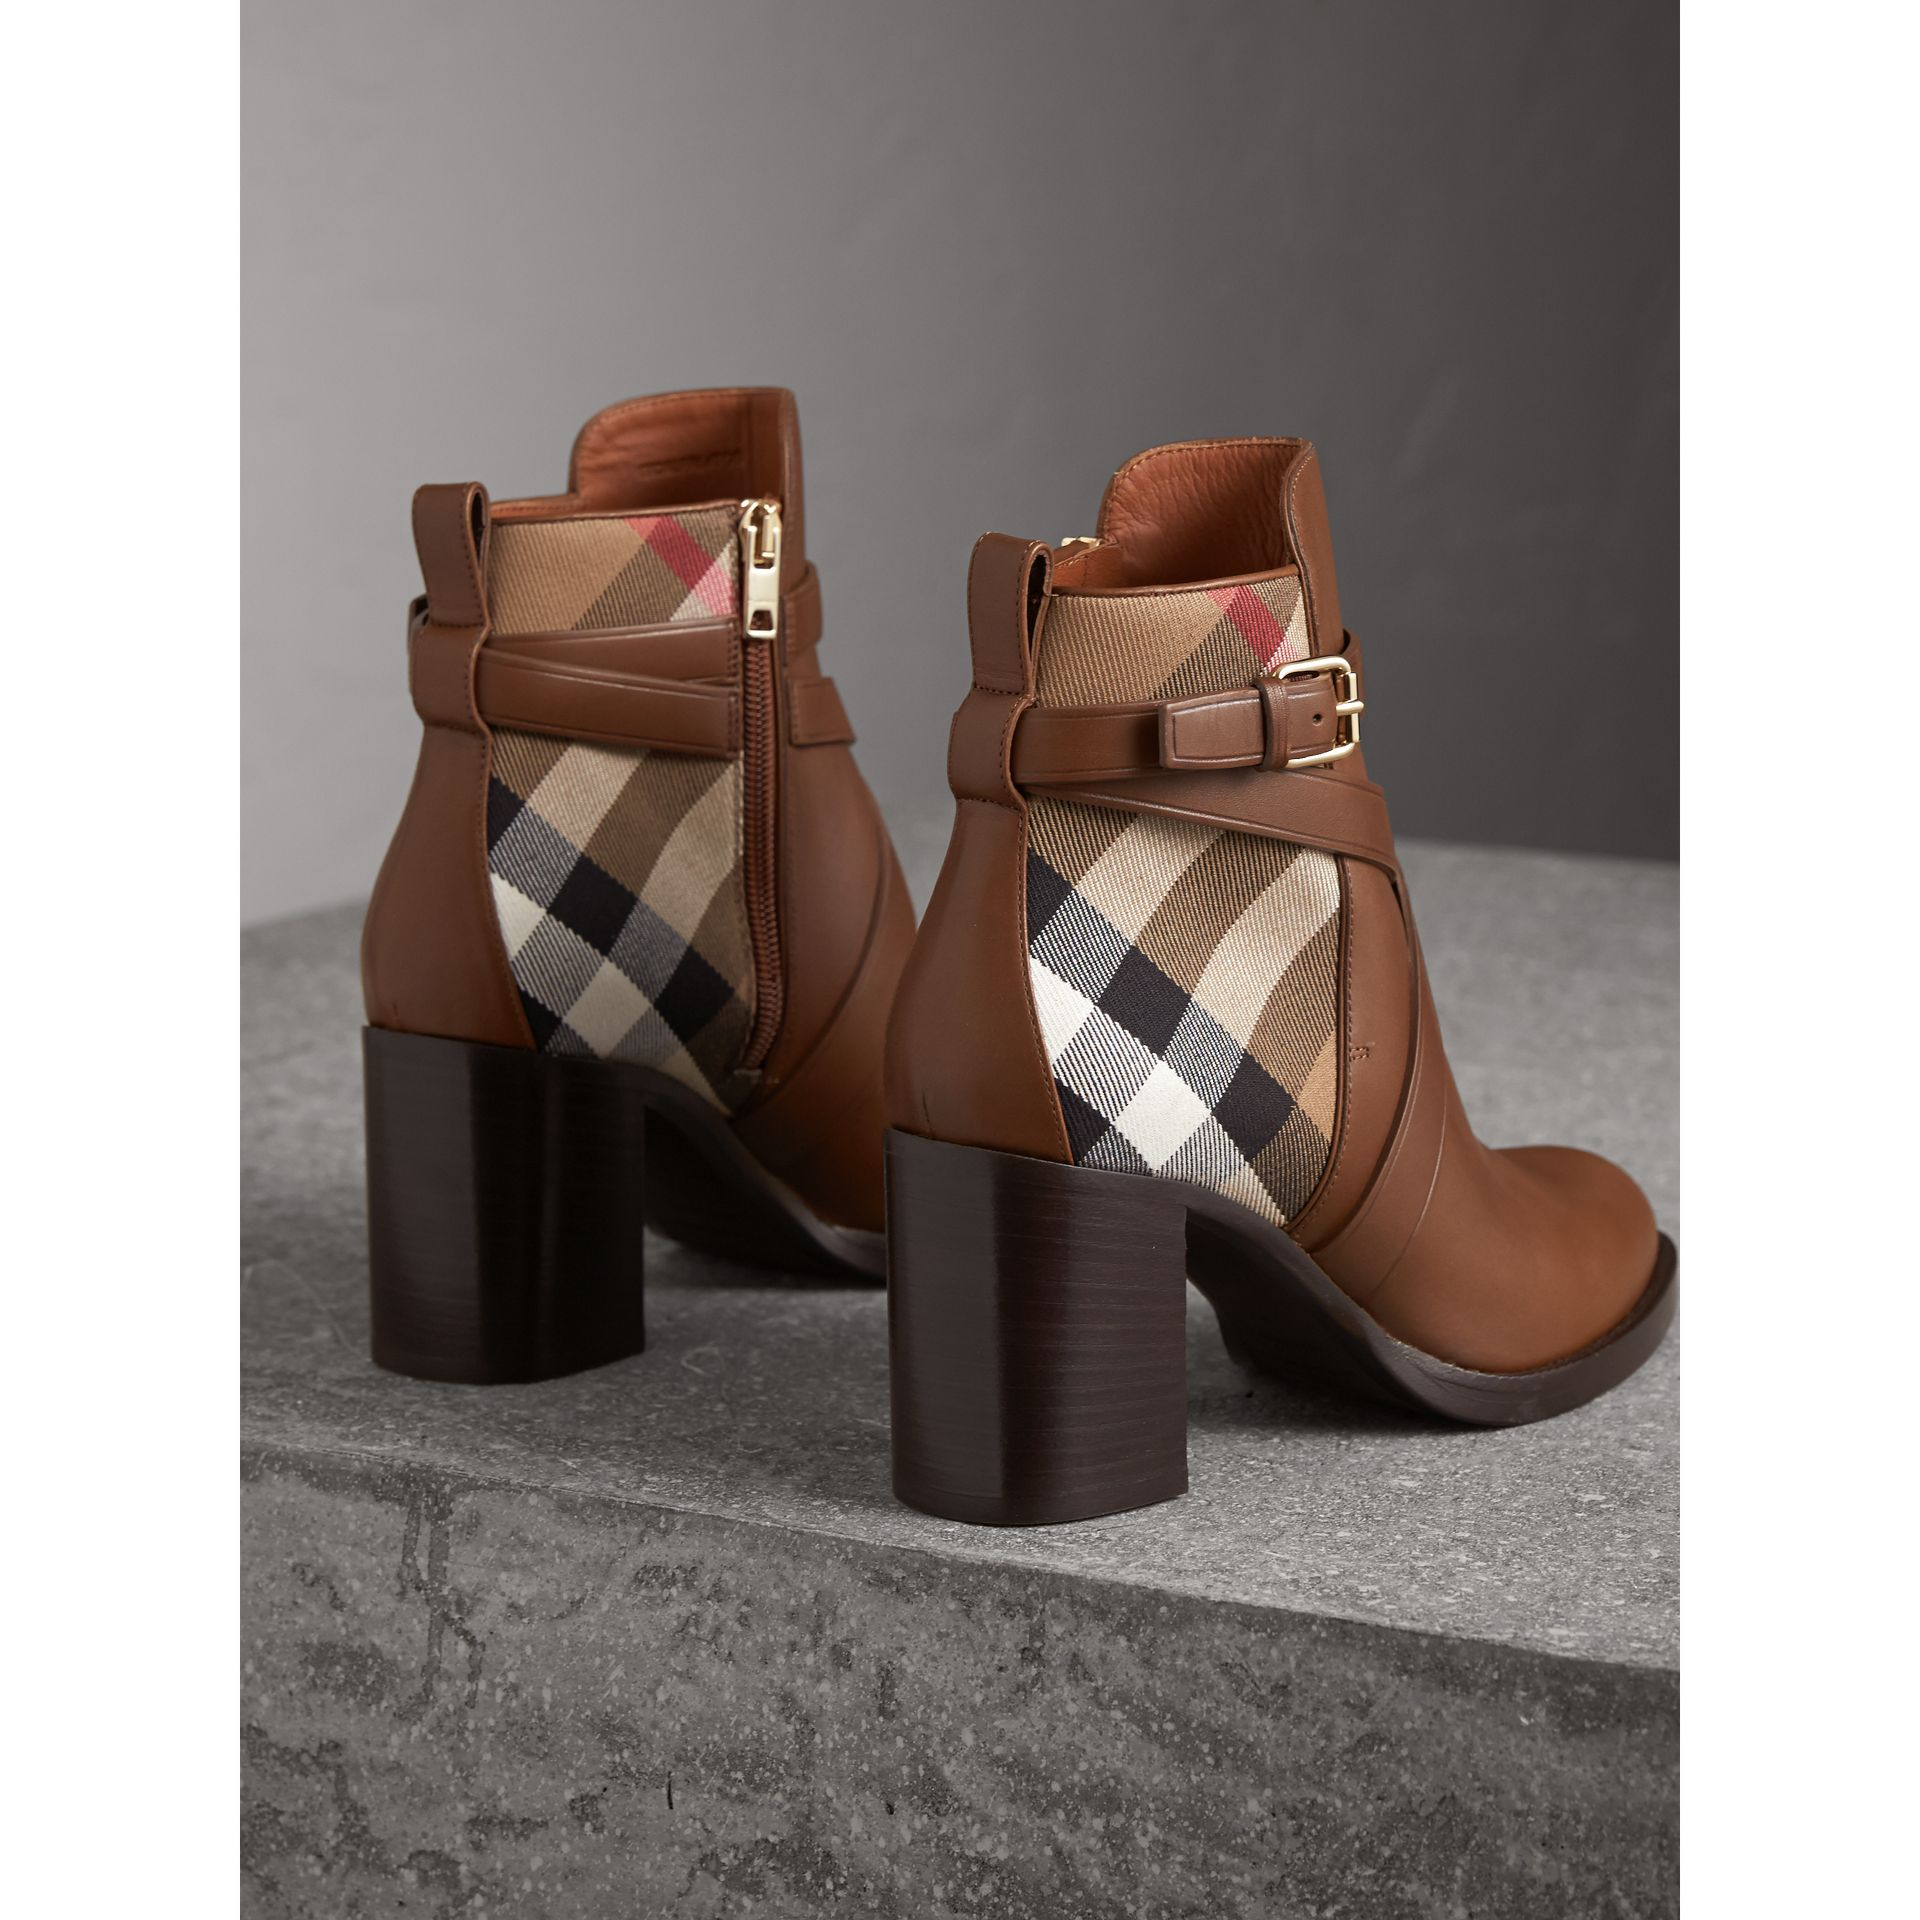 Bottines en cuir et coton House check (Camel Vif) - Femme | Burberry - photo de la galerie 4